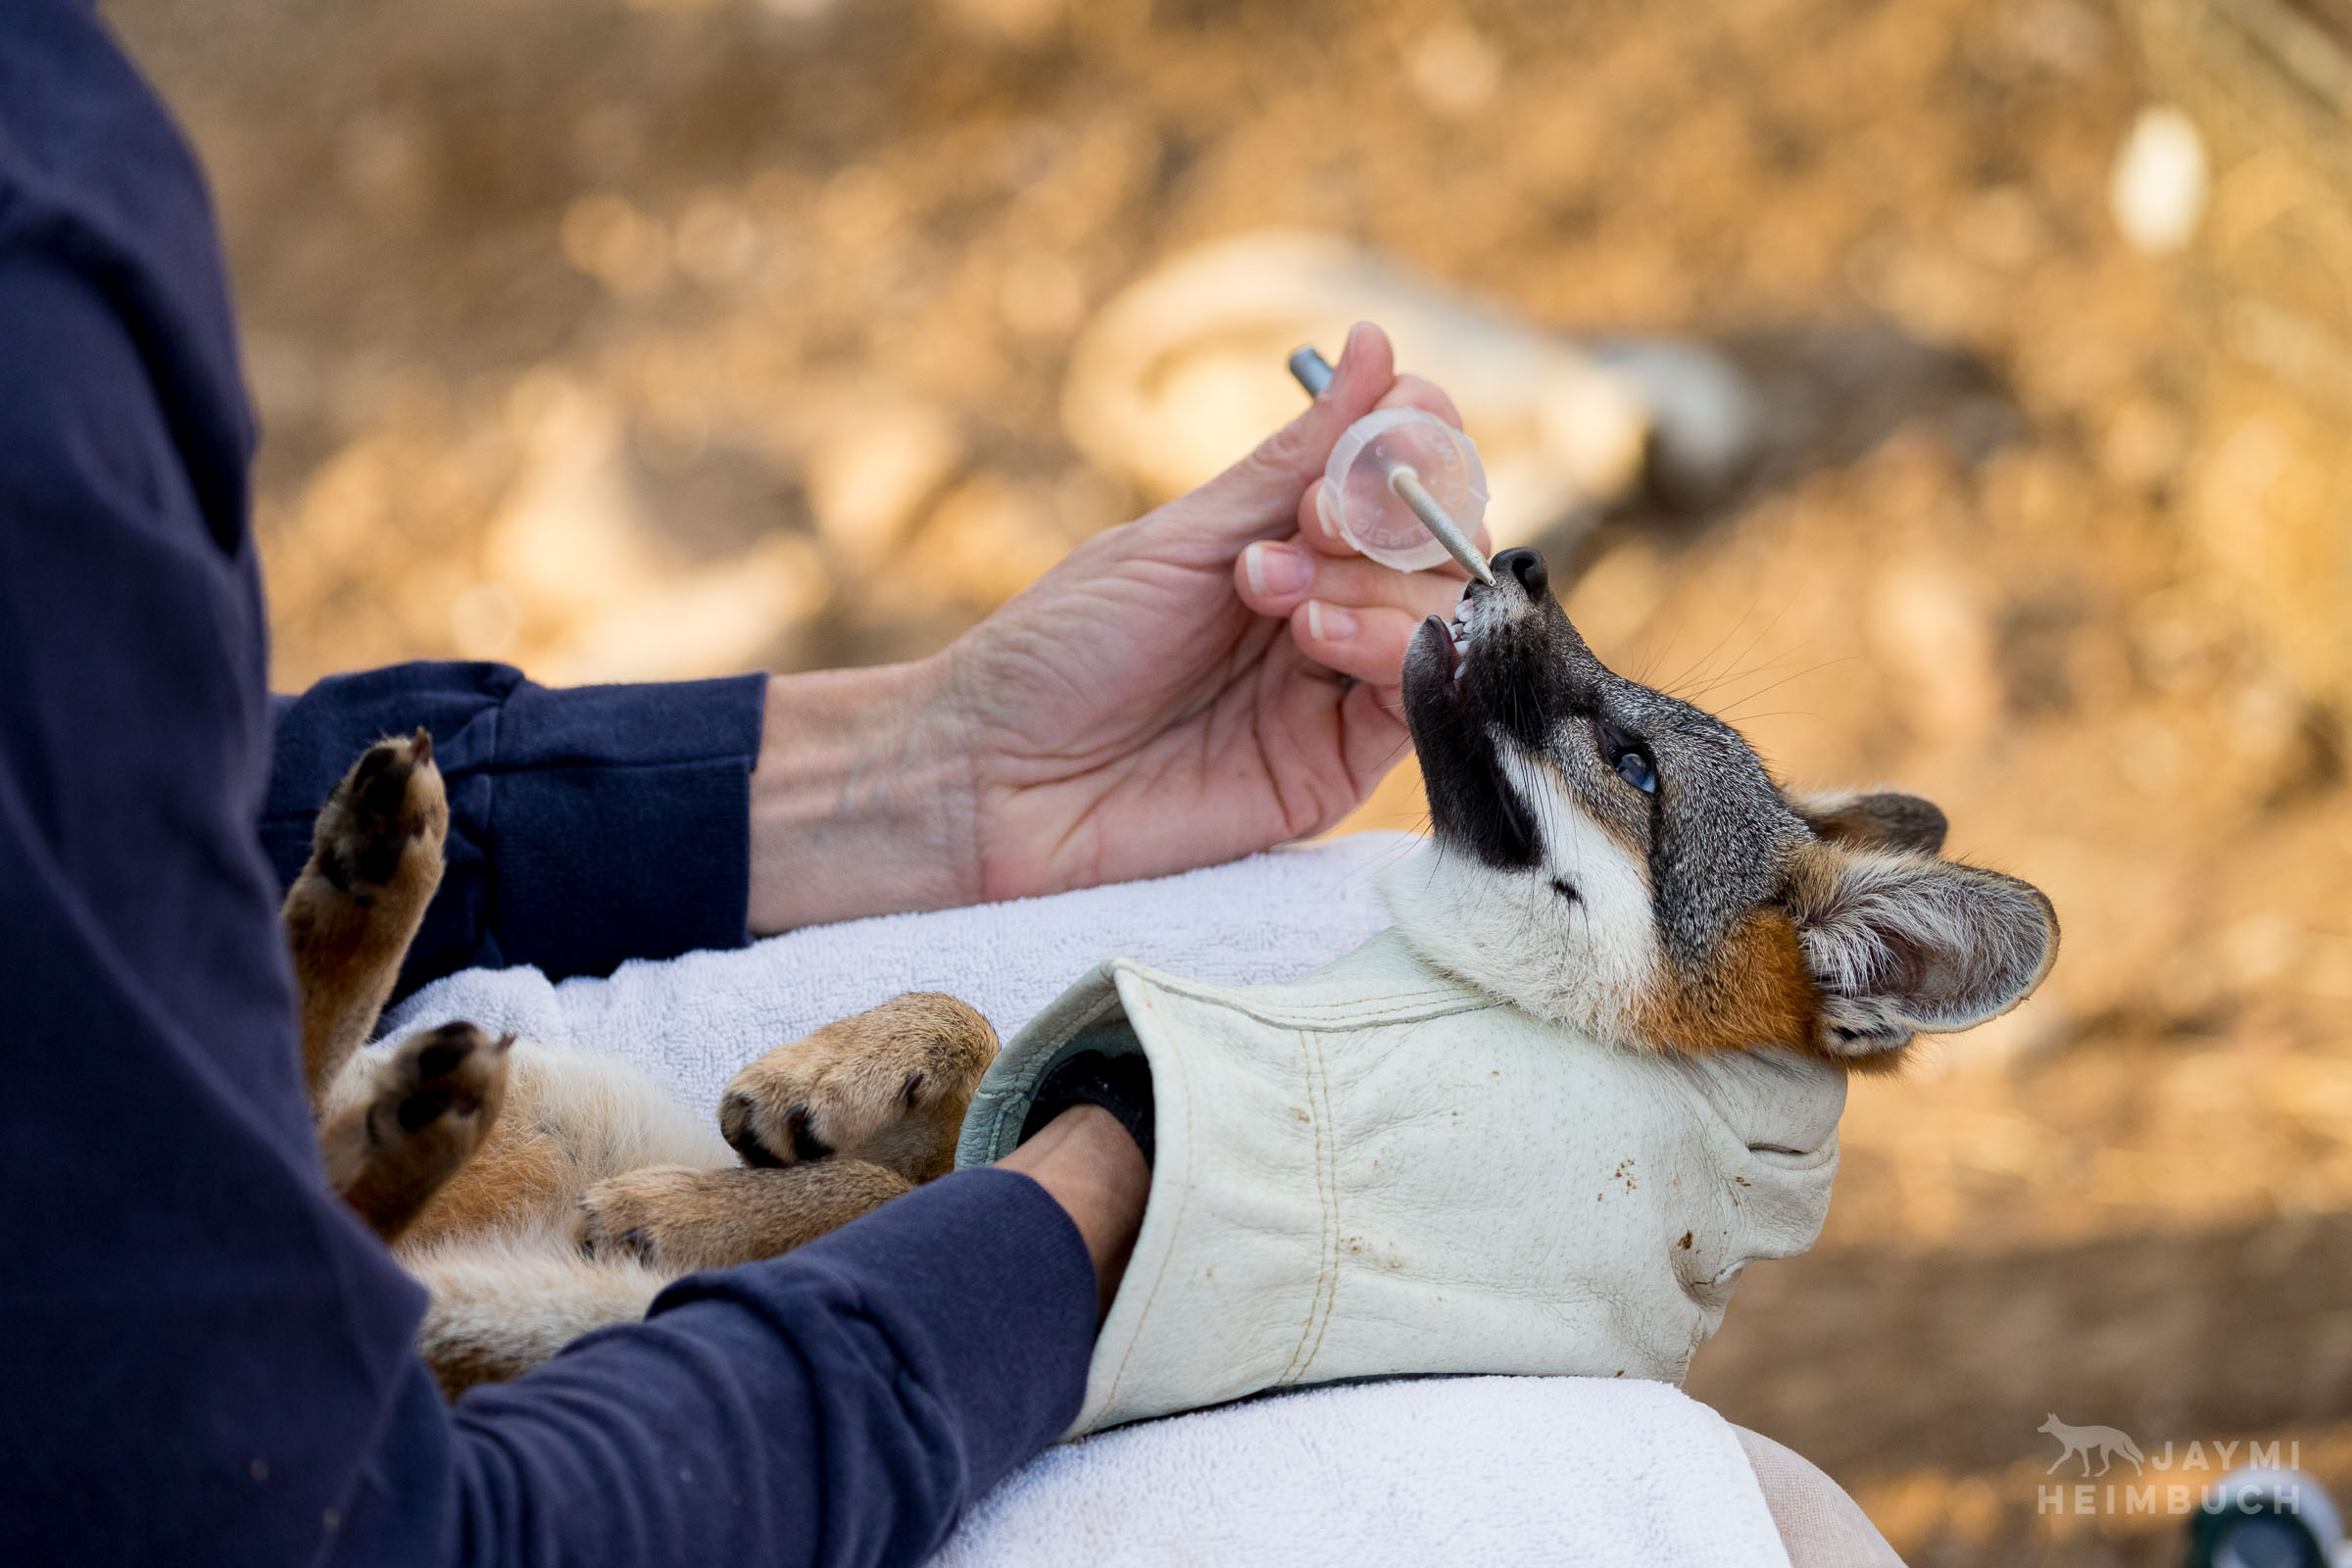 Channel Island Fox, Urocyon littoralis catalinae, being examined by researcher Julie King, Santa Catalina Island,  California, United States